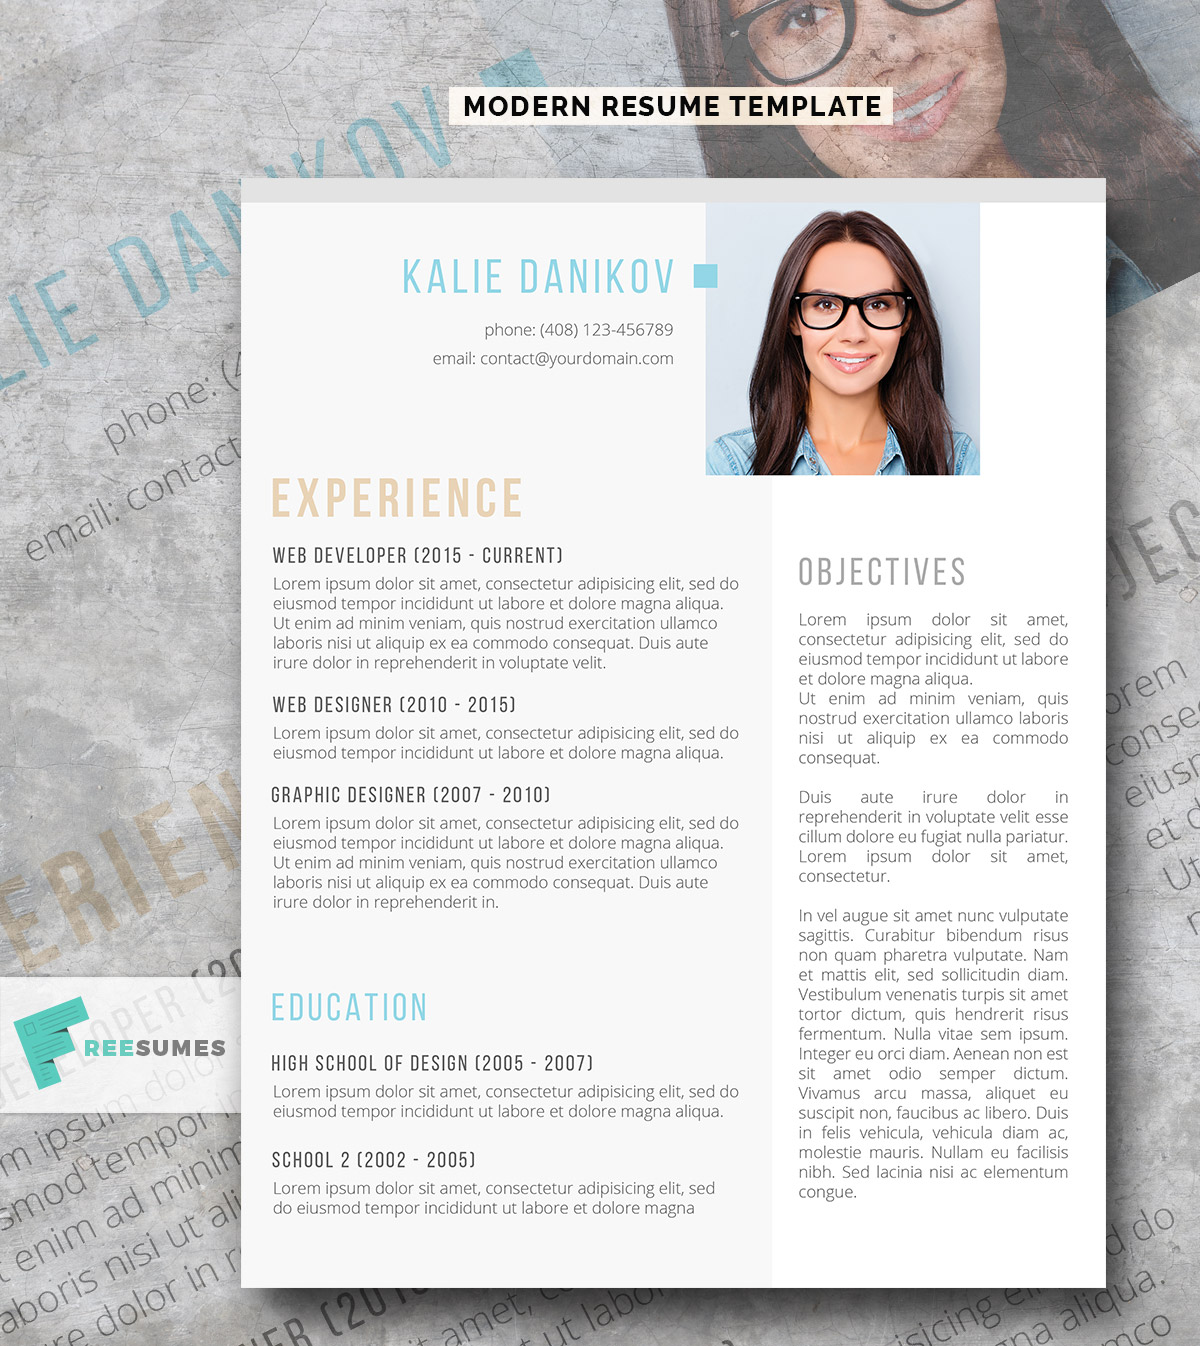 awesome free resume templates for creativetacos with photograph template modern clean Resume Free Resume Templates With Photograph